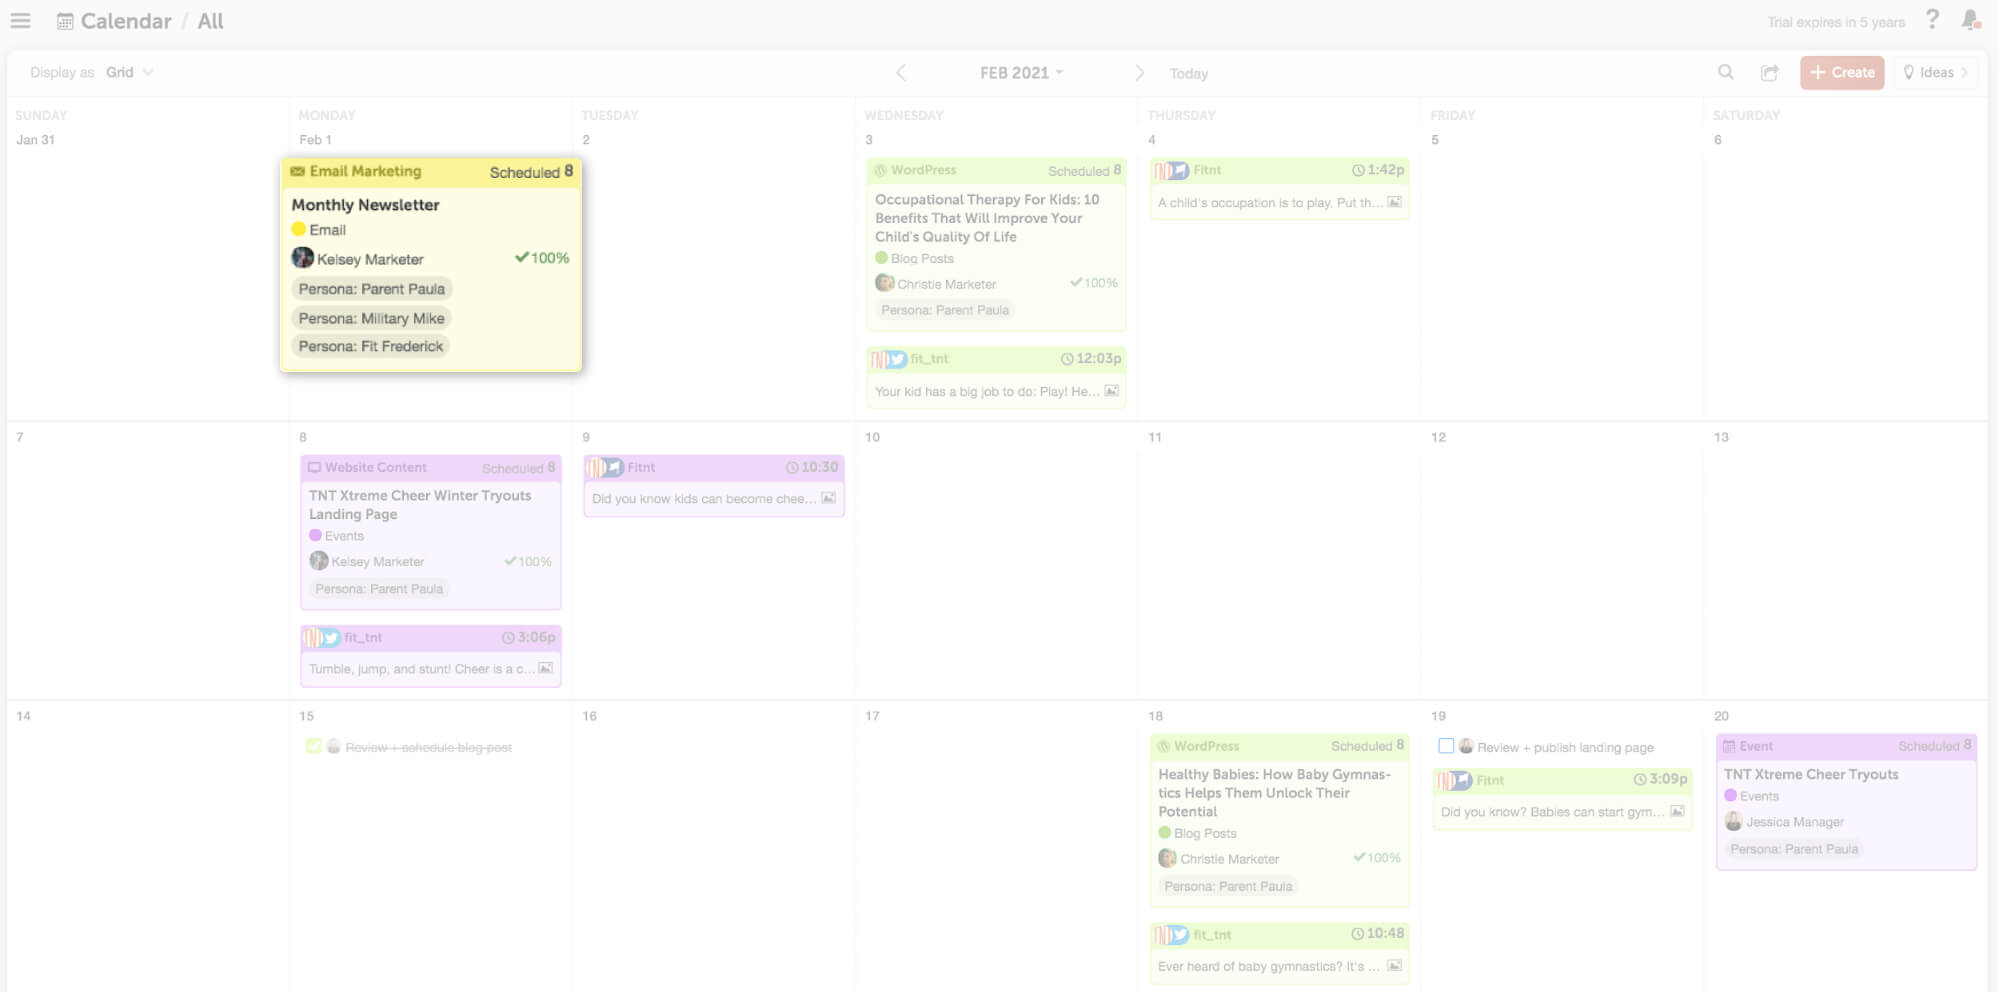 schedule projects the day they'll publish